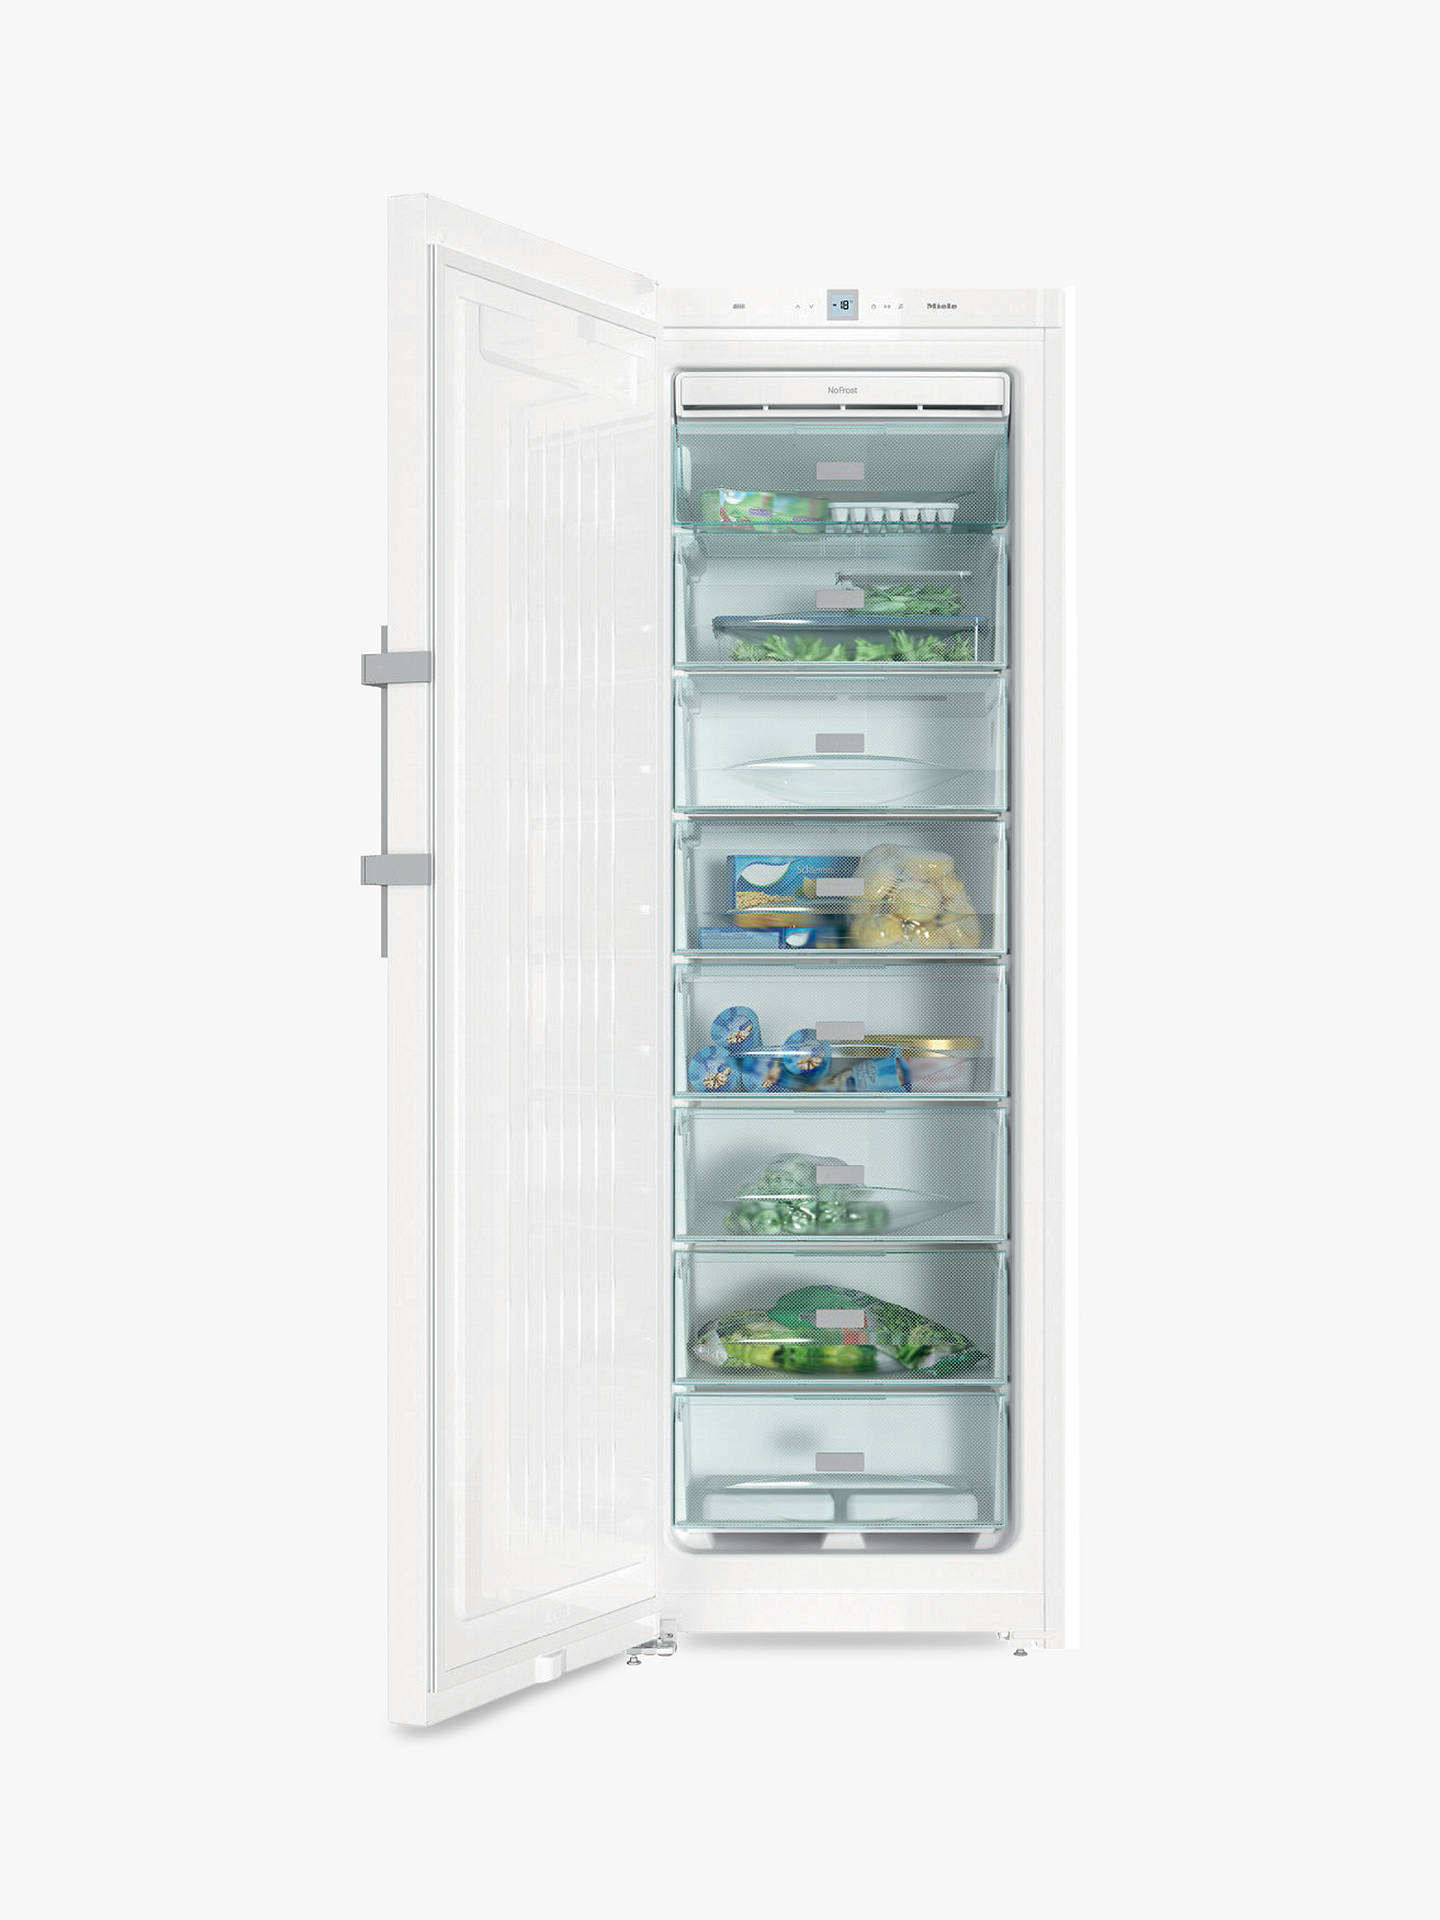 BuyMiele FN28262 Freestanding Freezer, A++ Energy Rating, 60cm Wide, White Online at johnlewis.com